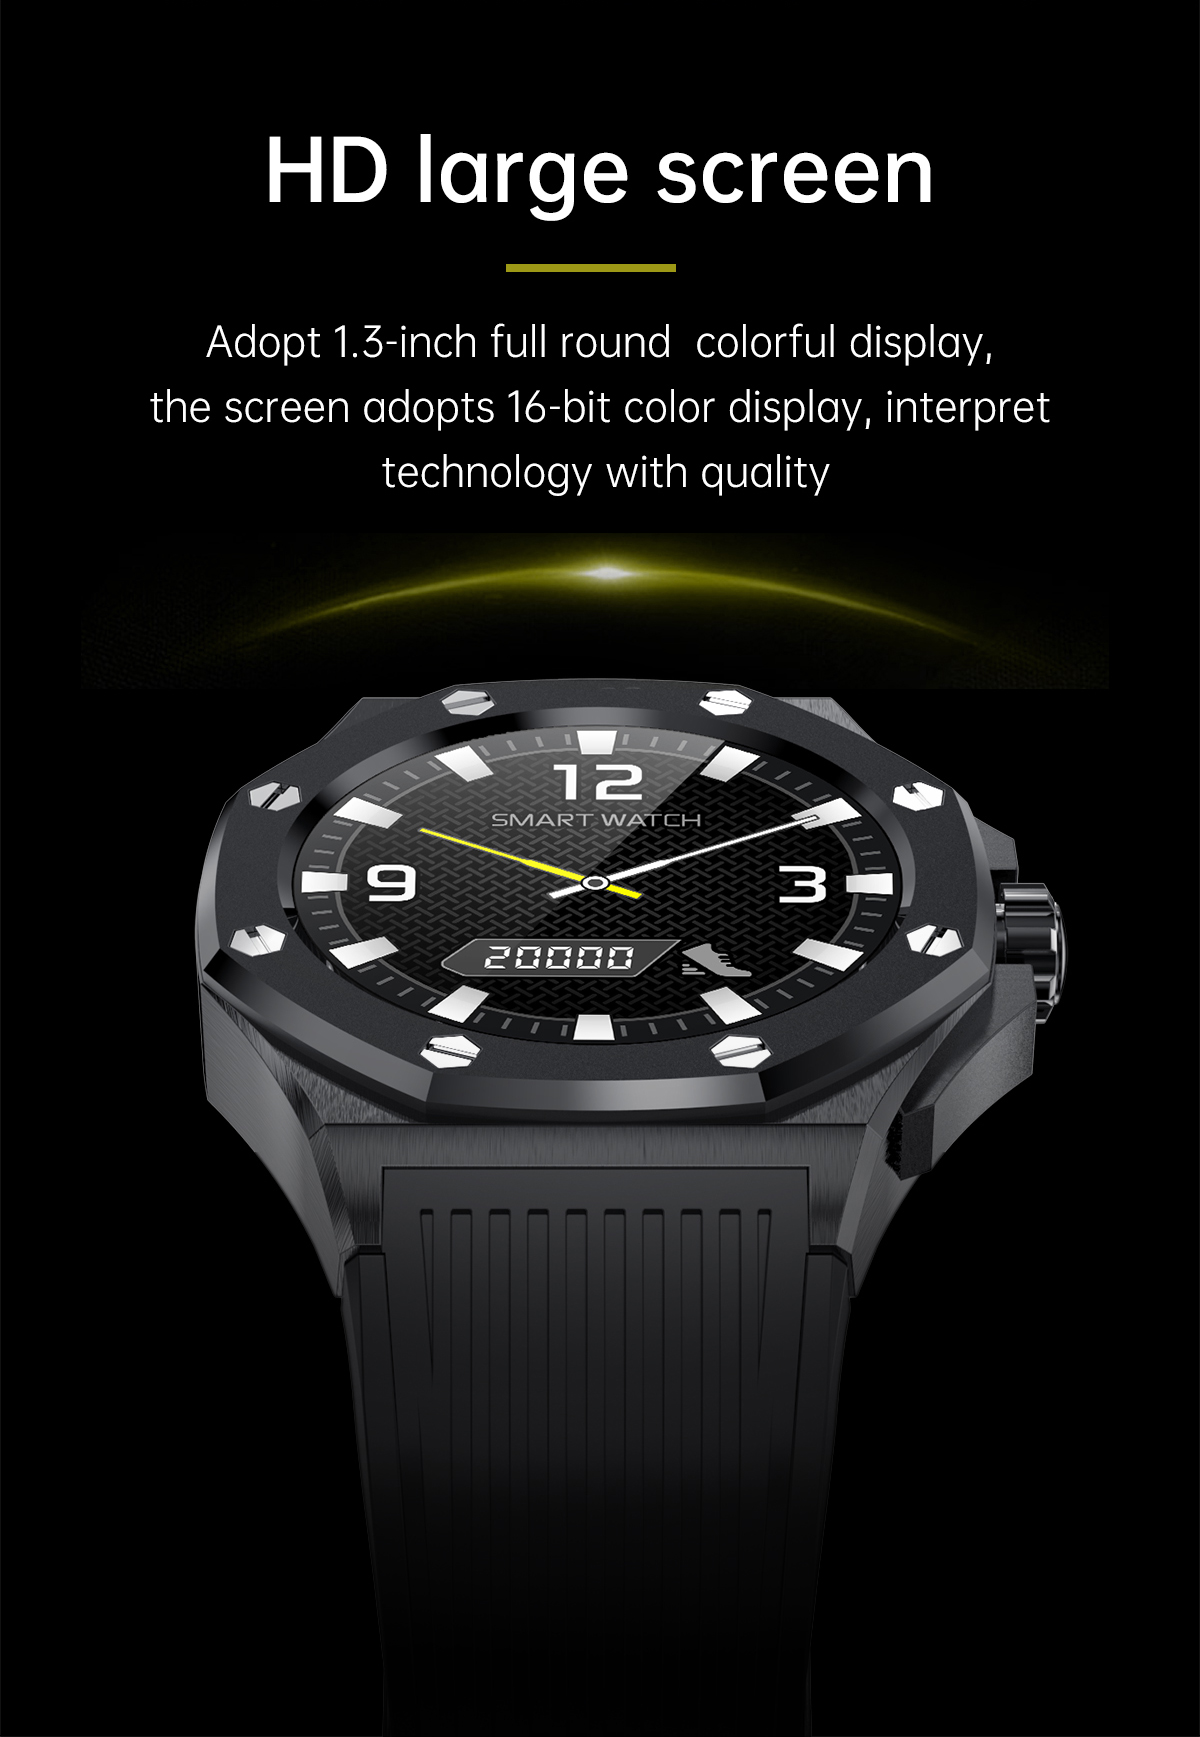 High F9 Smartwatch Latest New Model Android OS Business Sport Smart Watches for Men Wristwatches